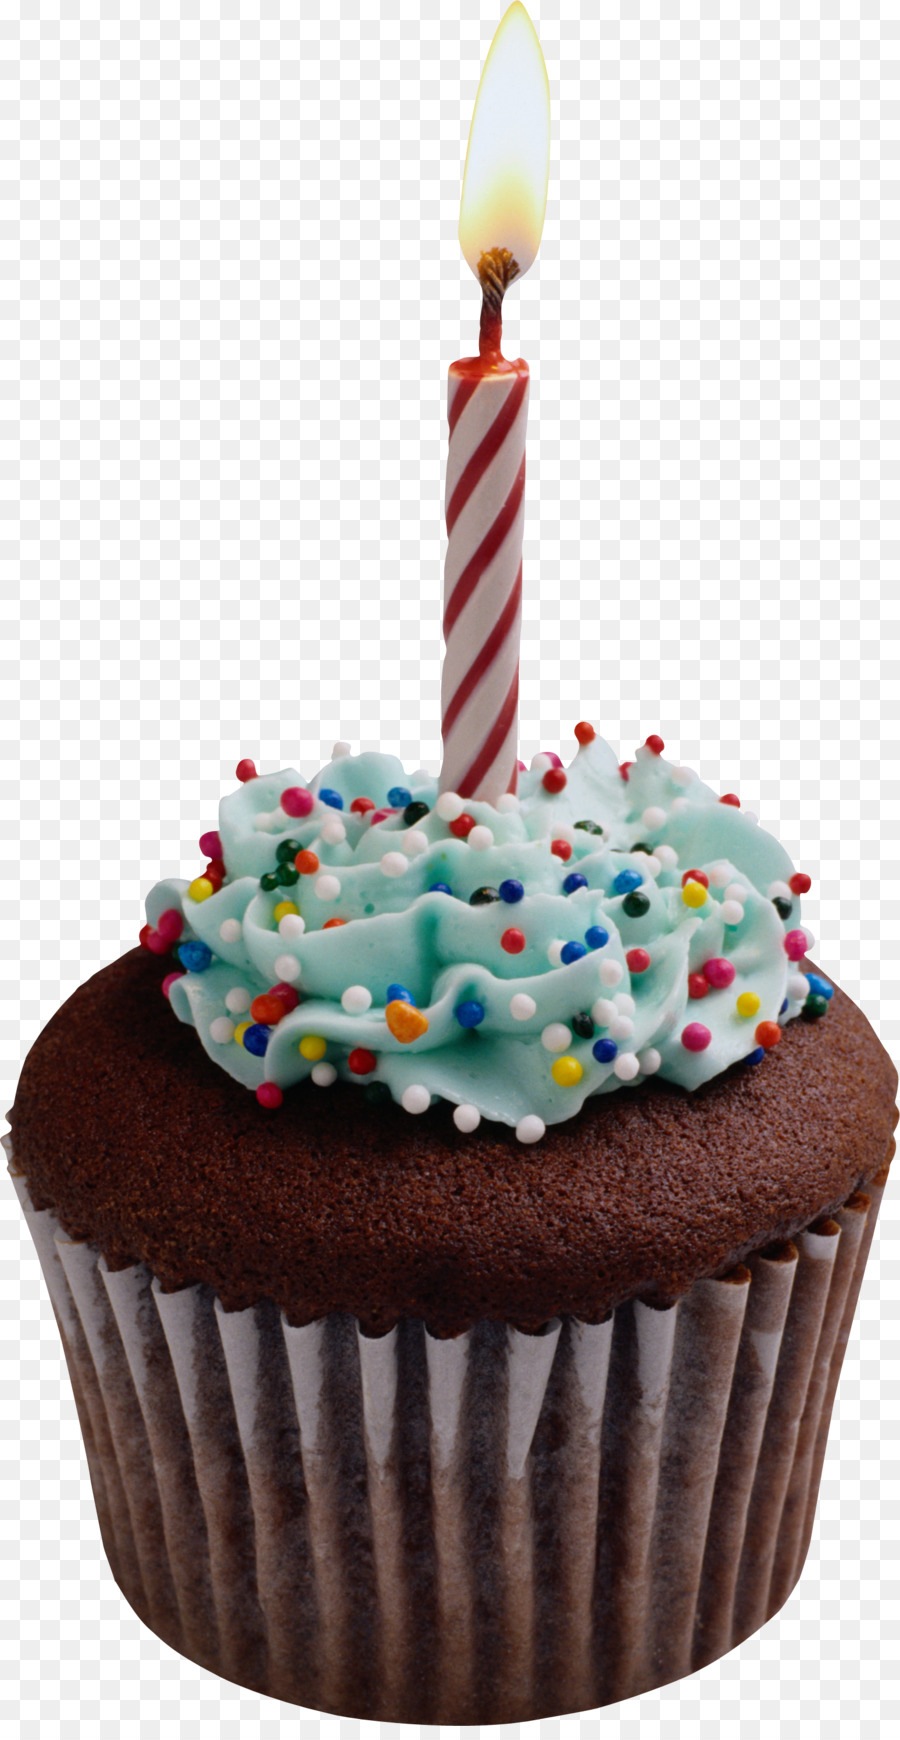 Birthday Cake Cupcake Golf Course First Birthday Png Download